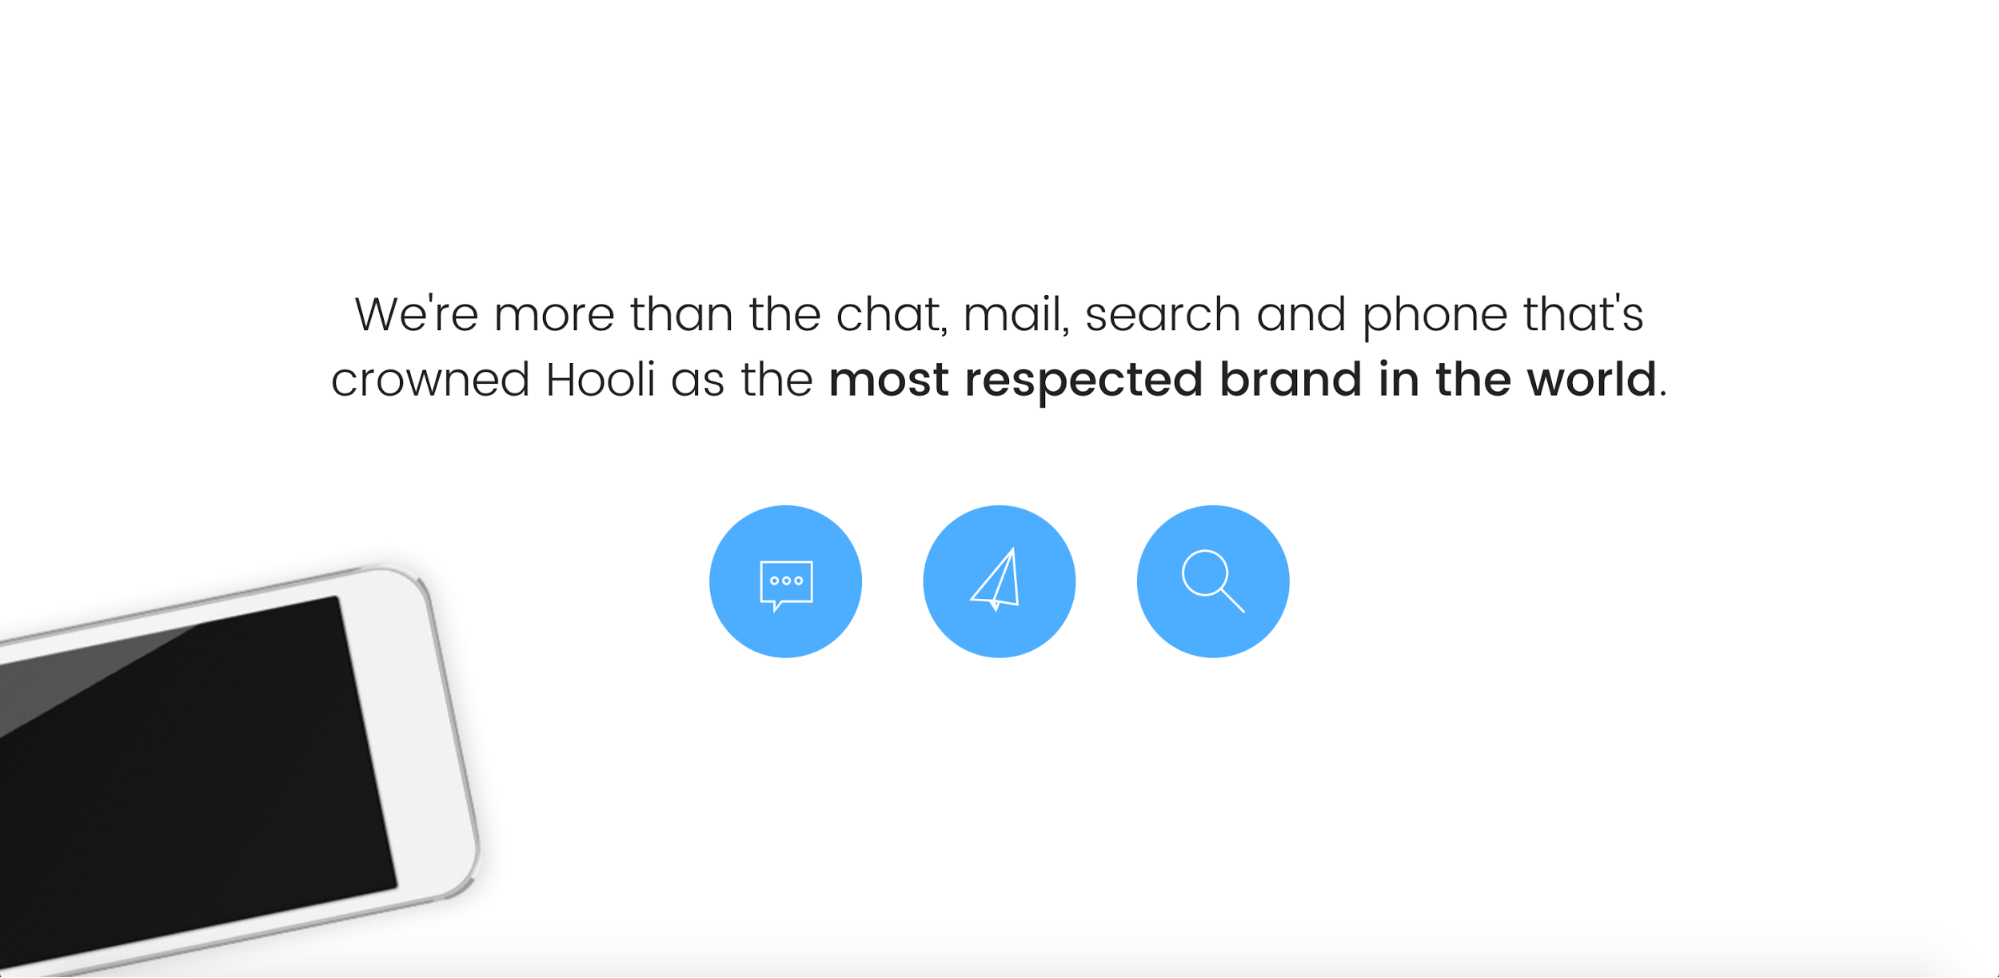 We're more than the chat, mail, search and phone that's crowned Hooli as the most respected brand in the world